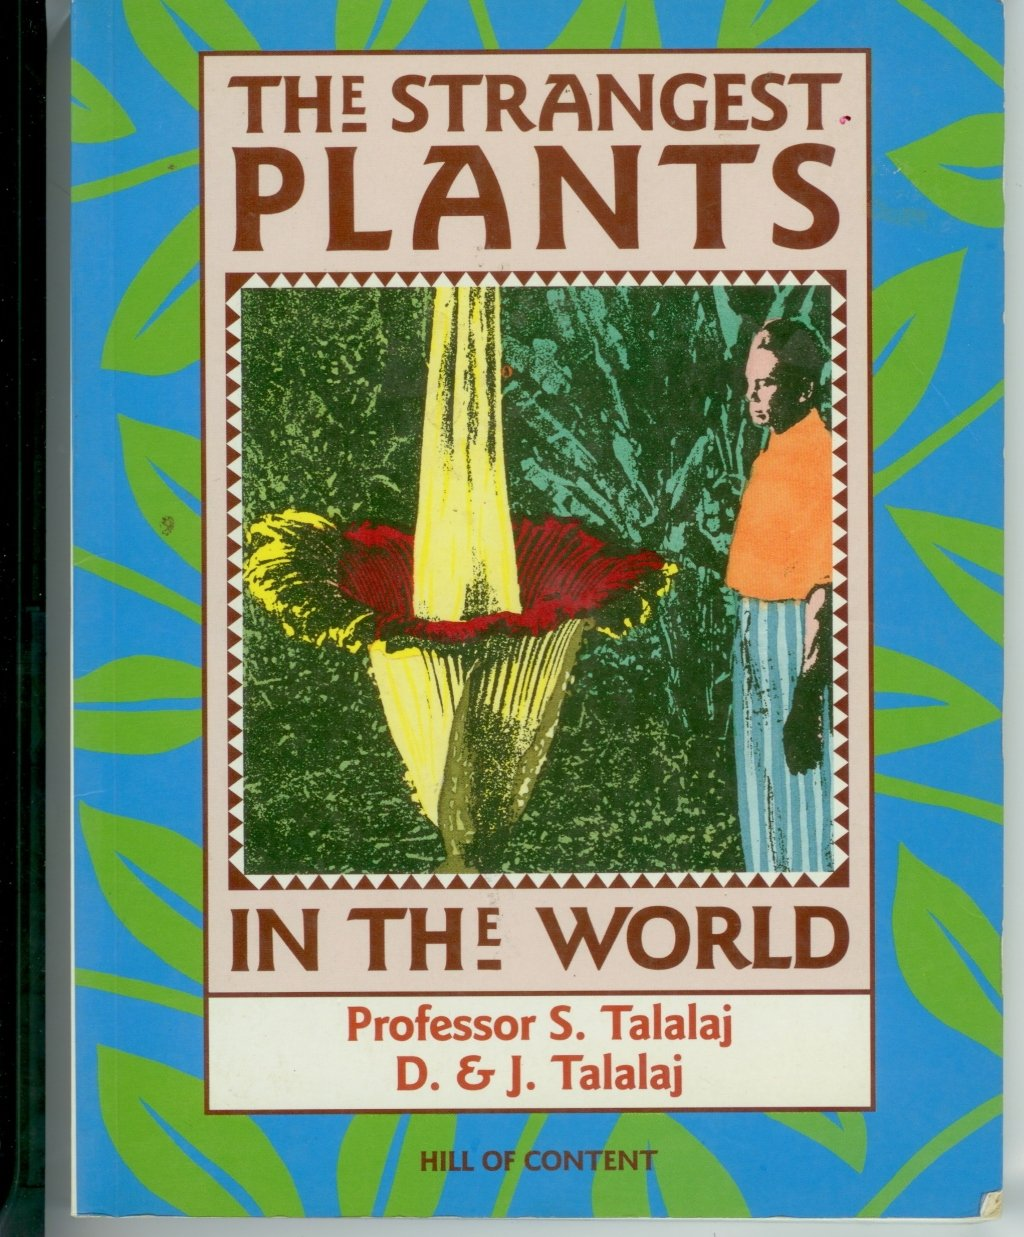 The Strangest Plants in the World paperback